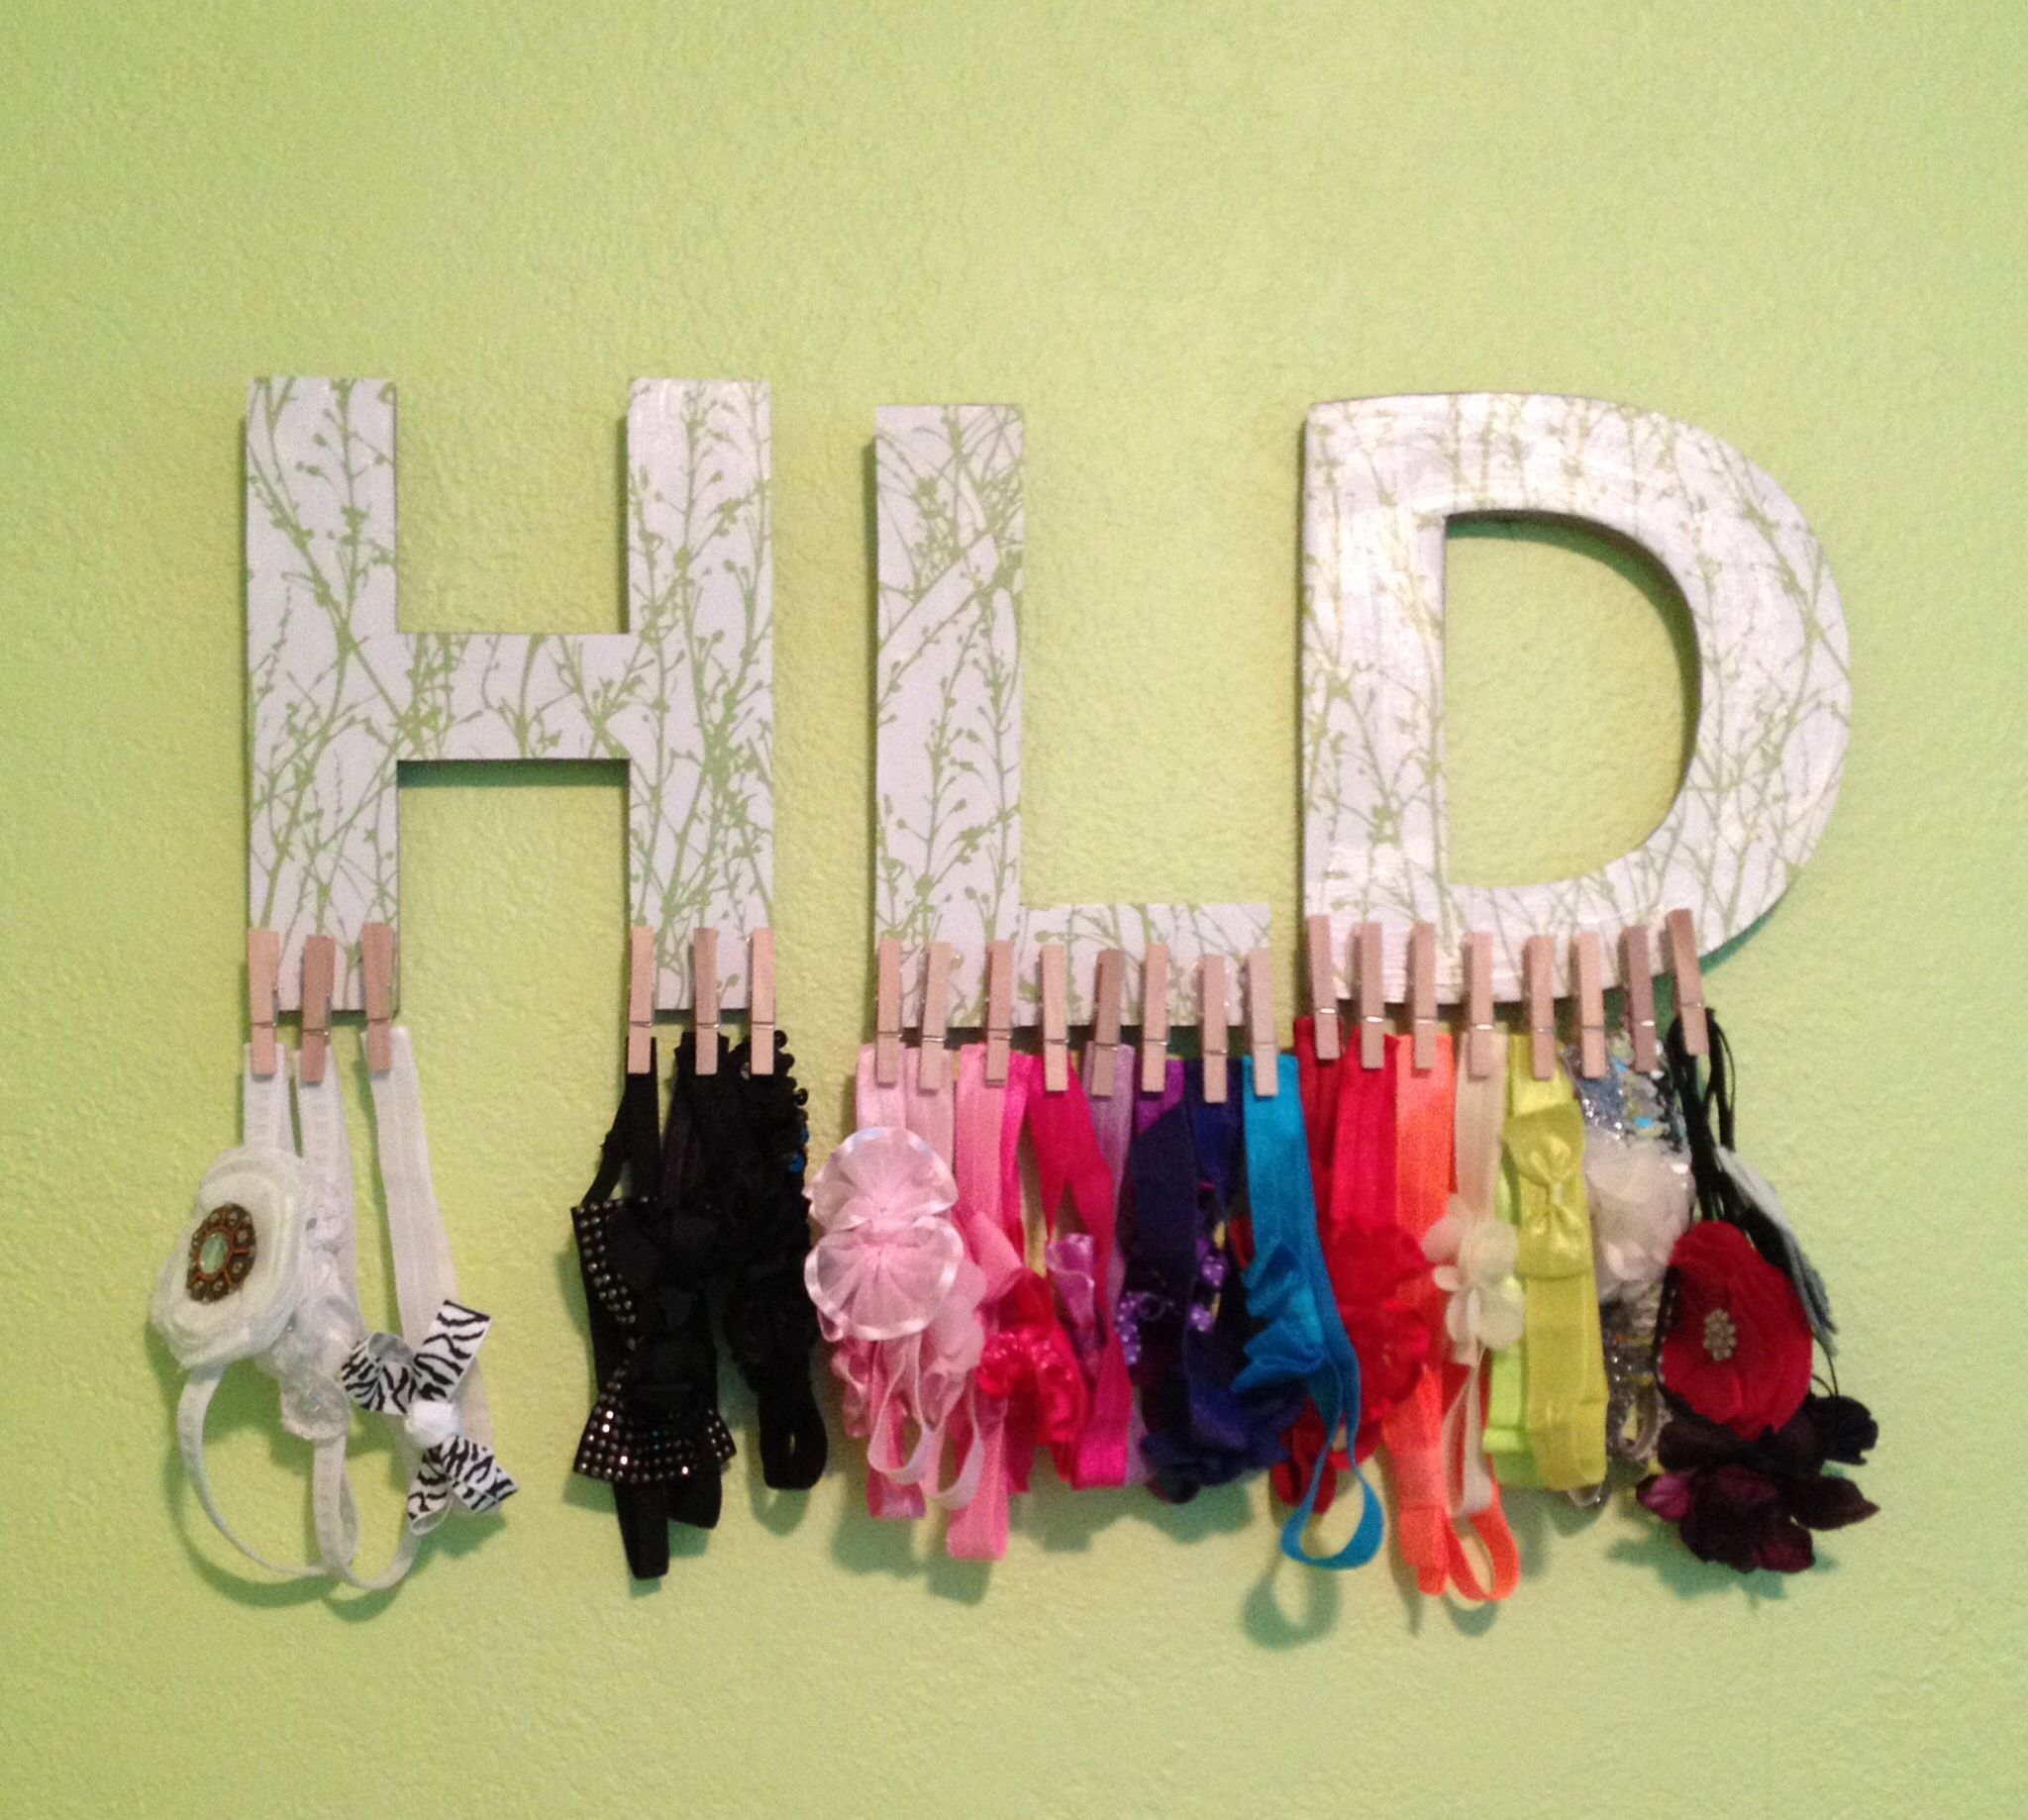 Made this for Harlow's headbands. She has a few :)